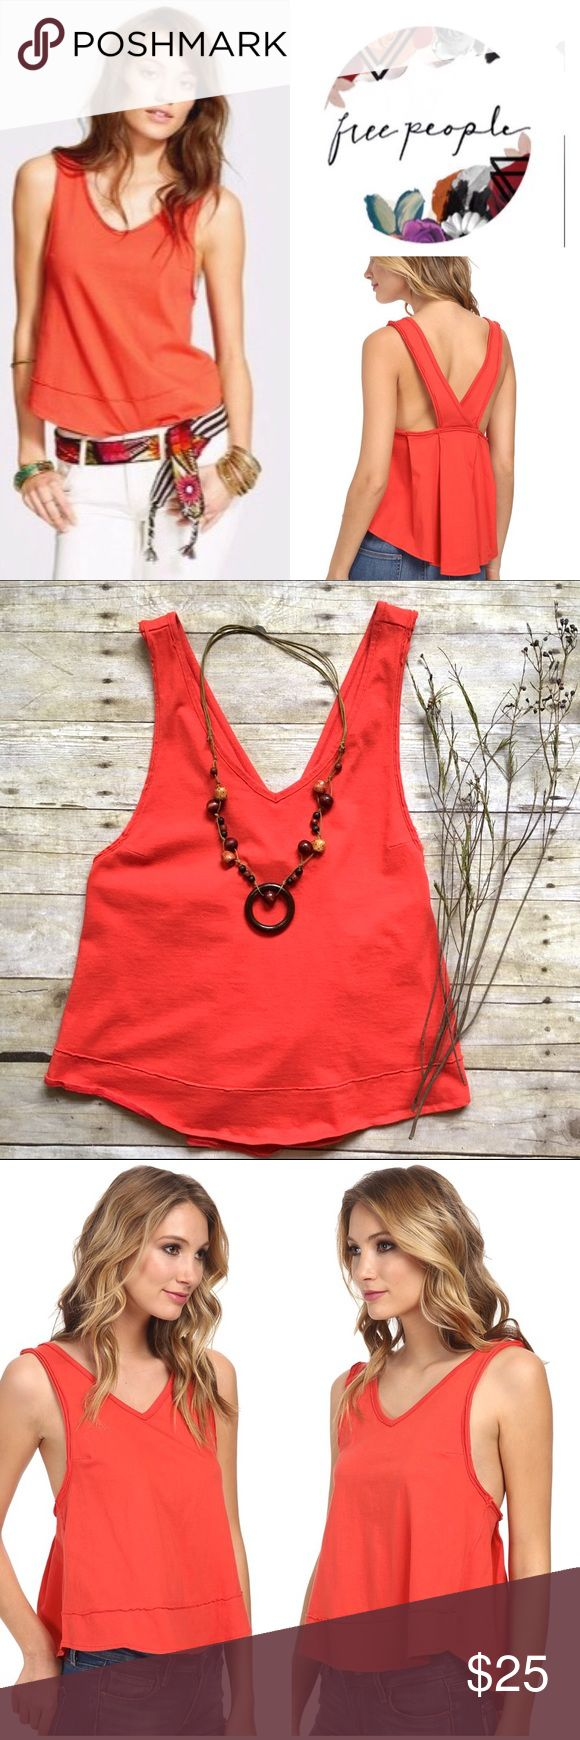 "Free People orange Toying Around tank Superbly soft cotton tank features a relaxed fit and deep straps at V-back. V-neckline and sleeveless construction. Pull-on design. Raw-cut trim. Curved hemline. 100% cotton. 24""L. In excellent condition. As seen on Melissa Benoit in the movie The Longest Ride. Size Medium. Free People Tops Tank Tops"